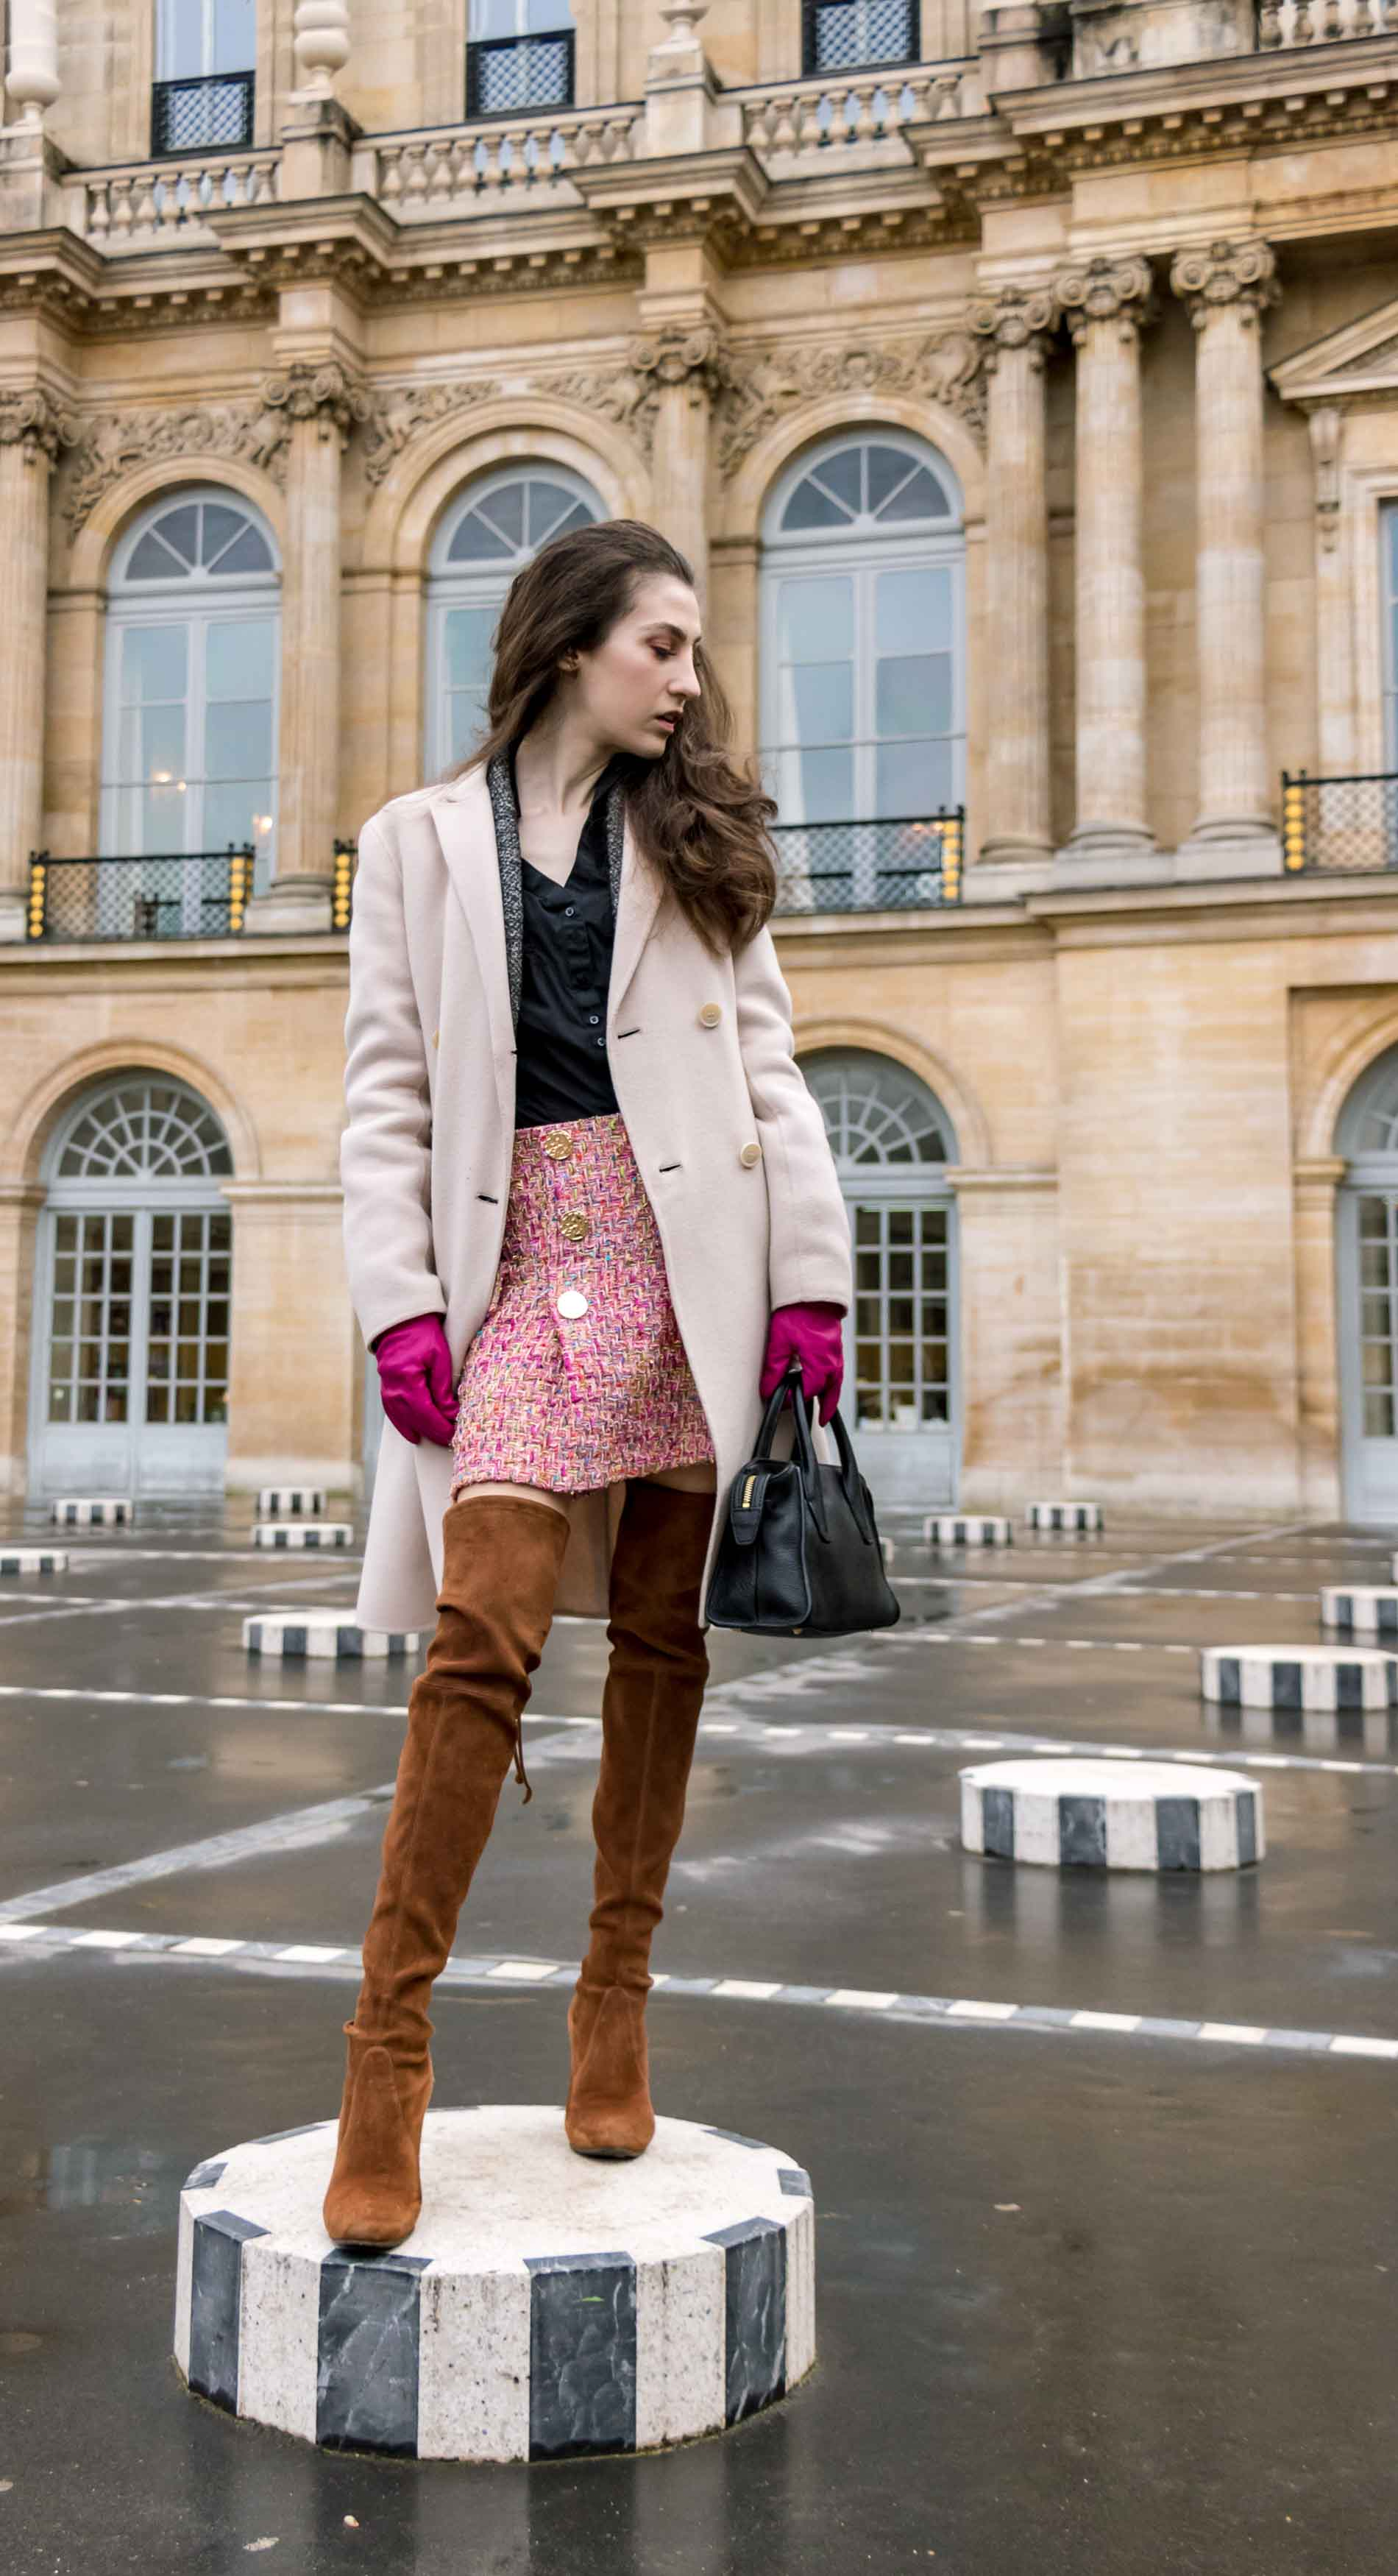 Fashion Blogger Veronika Lipar of Brunette from Wall Street wearing Stuart Weitzman over the knee boots, Weekend Maxmara coat, Storets pink tweed shorts, black shirt, pink leather gloves and black small bag during Paris fashion week autumn winter 2018/19 standing on Les Deux Plateaux